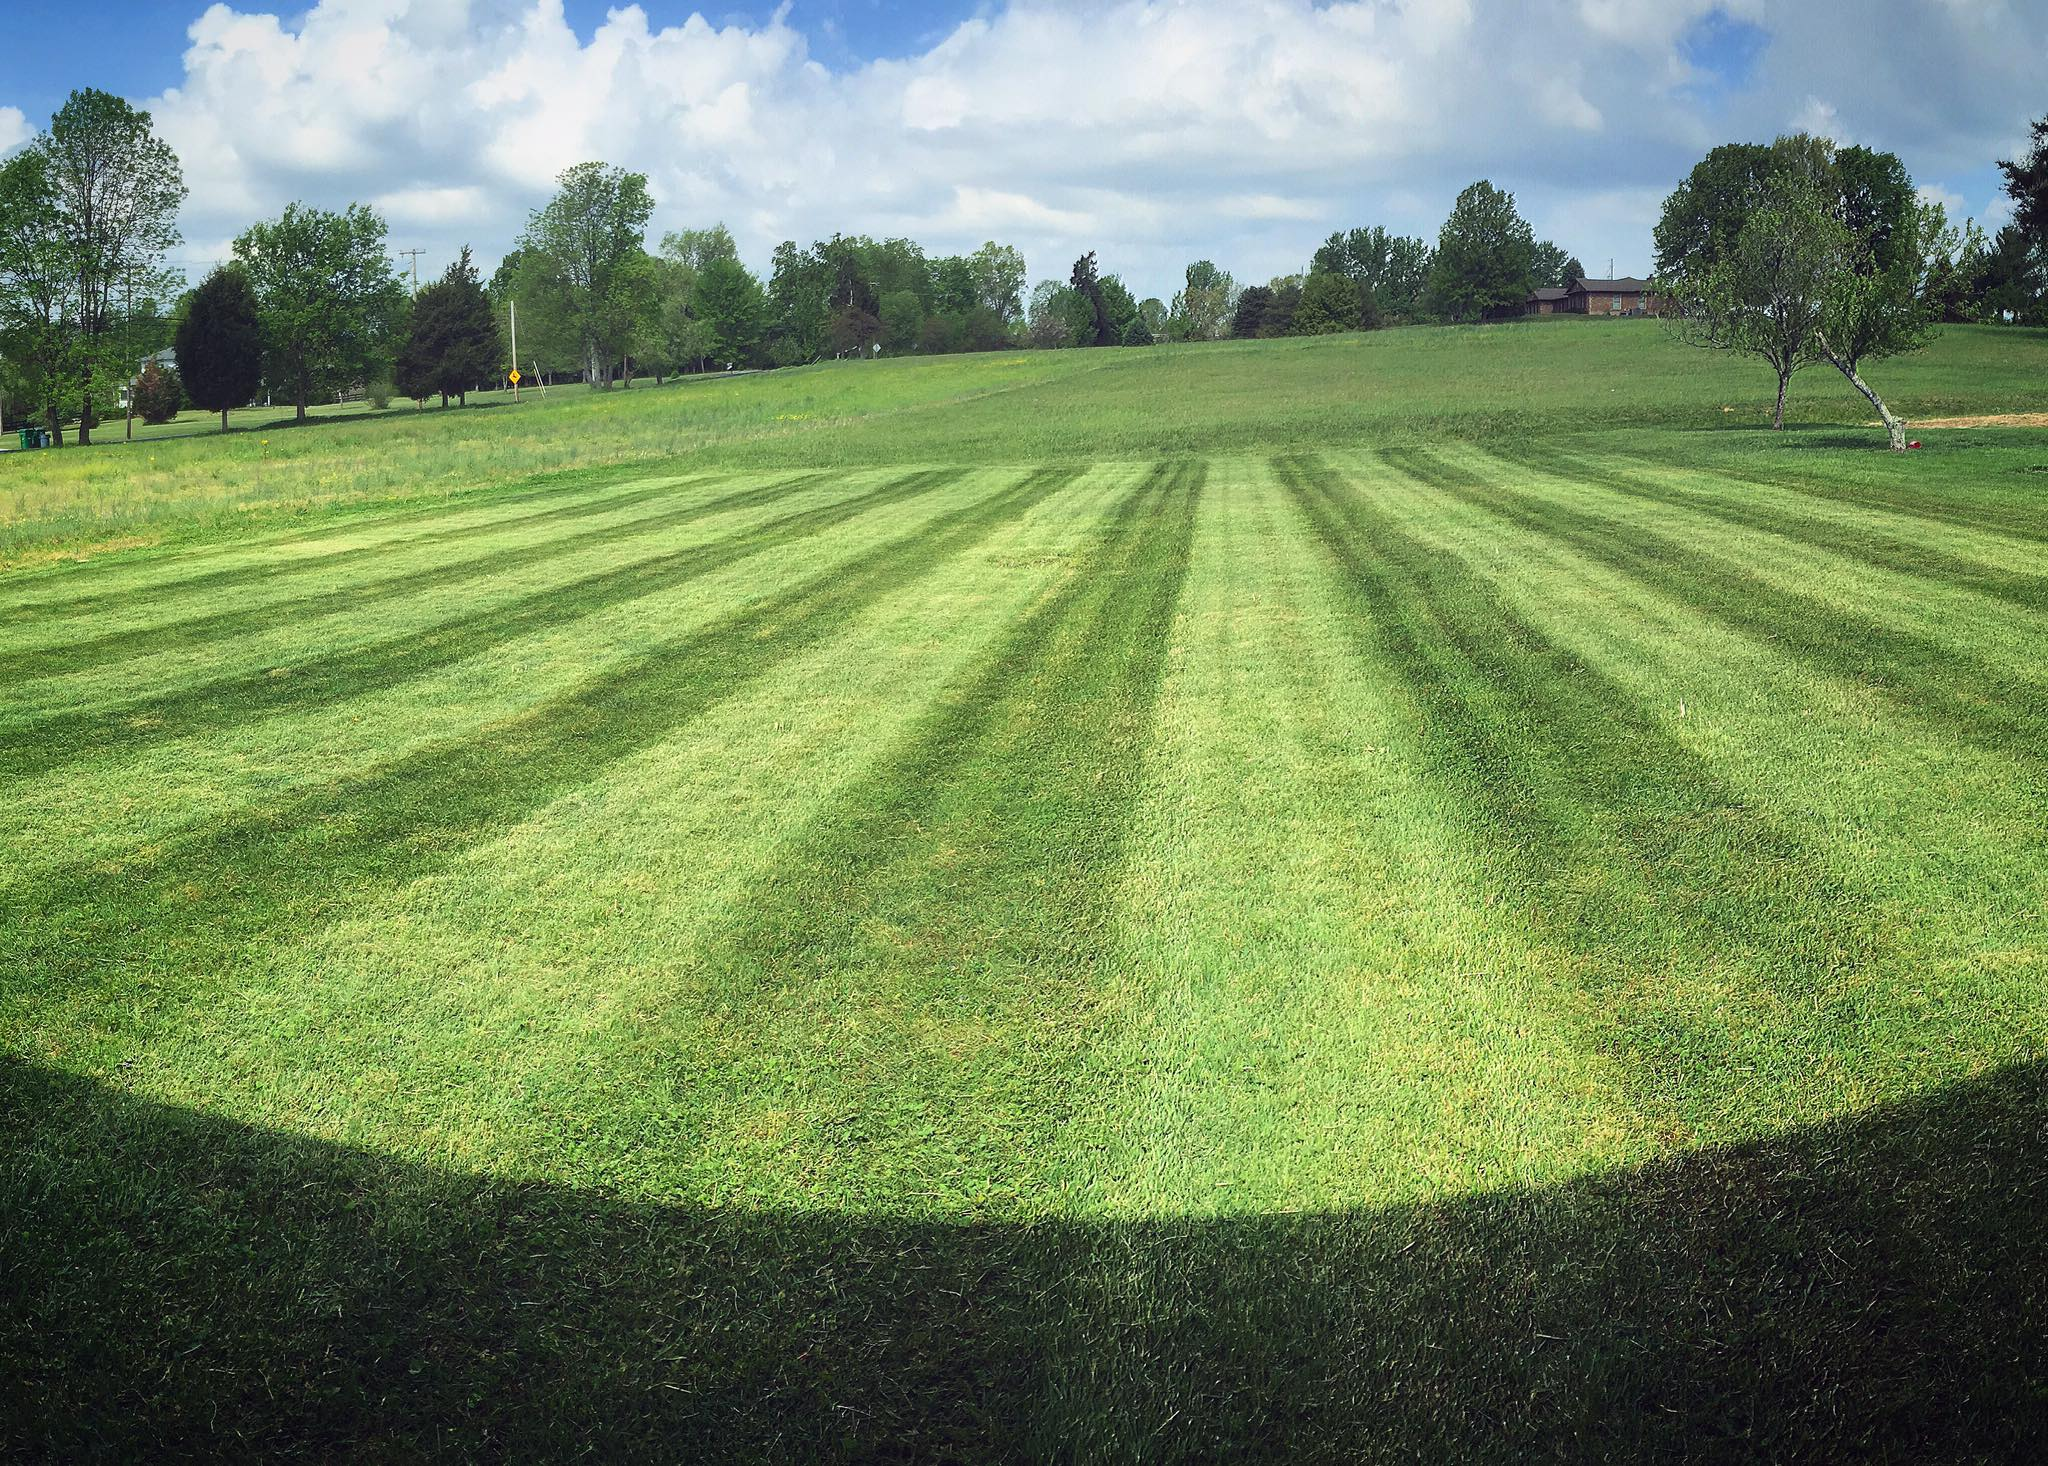 Yard mowing company in Murfreesboro, TN, 37129